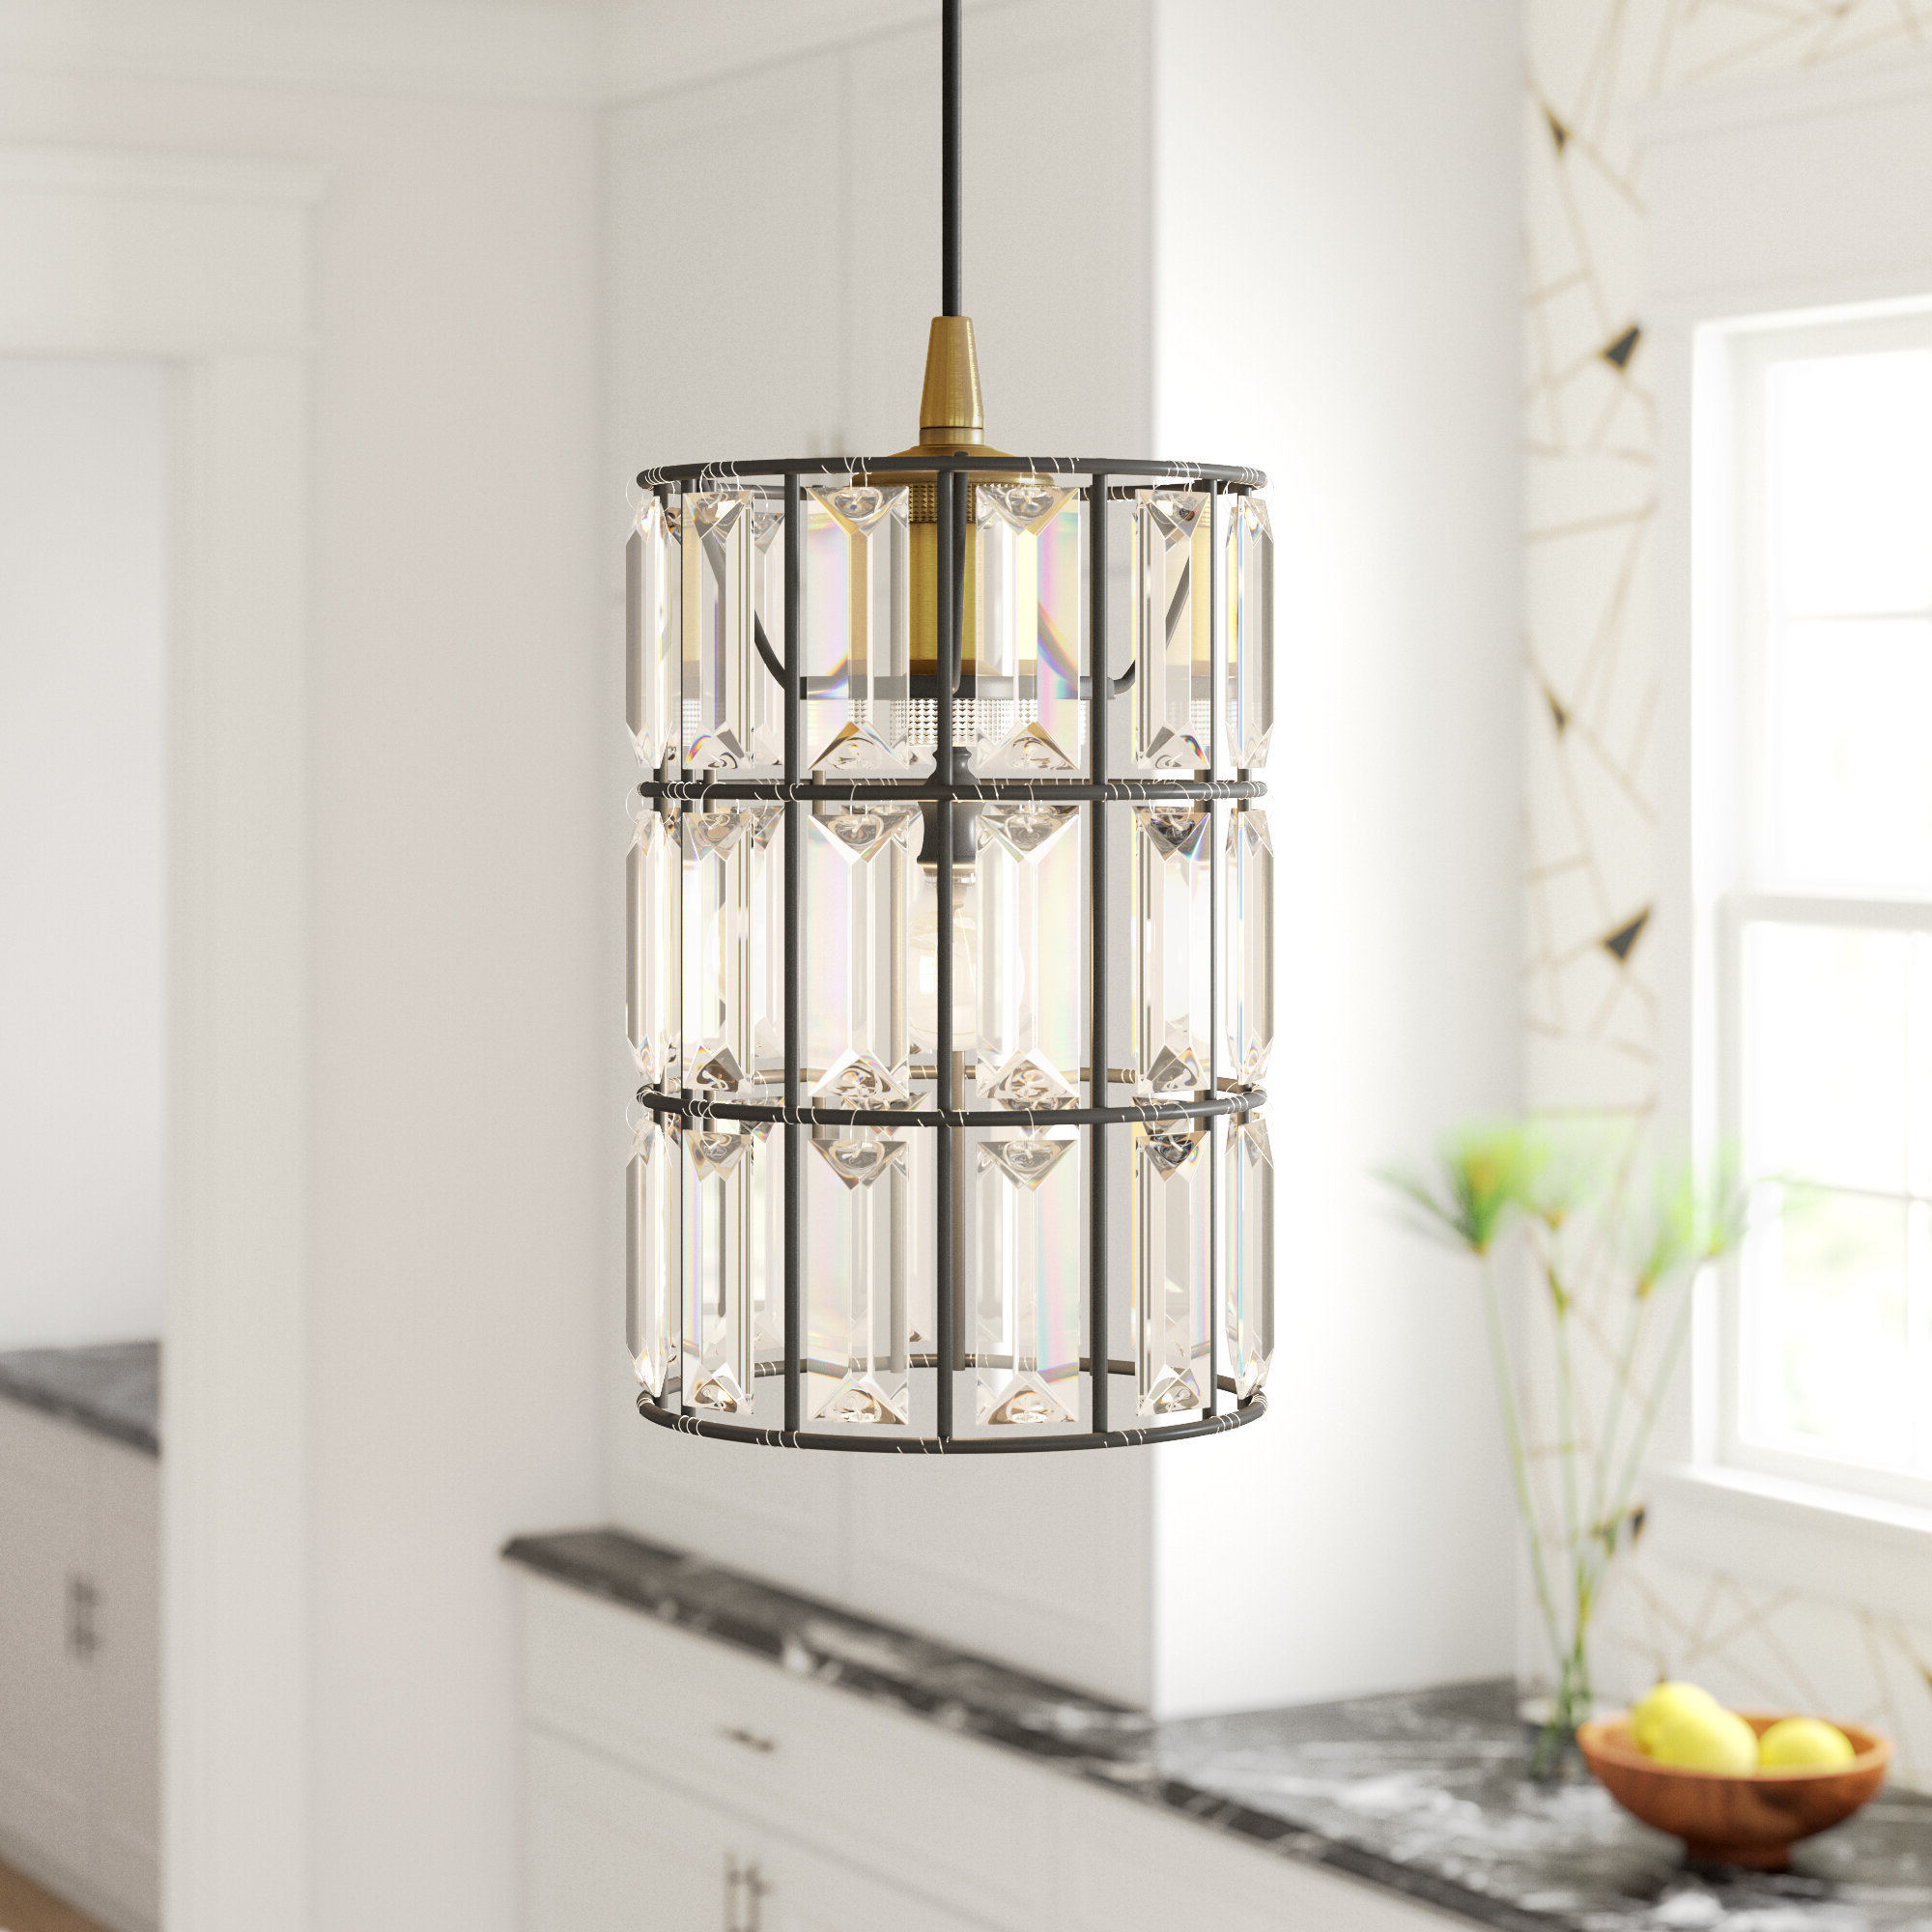 Colston 1 Light Single Cylinder Pendant For Latest Hermione 1 Light Single Drum Pendants (View 9 of 25)